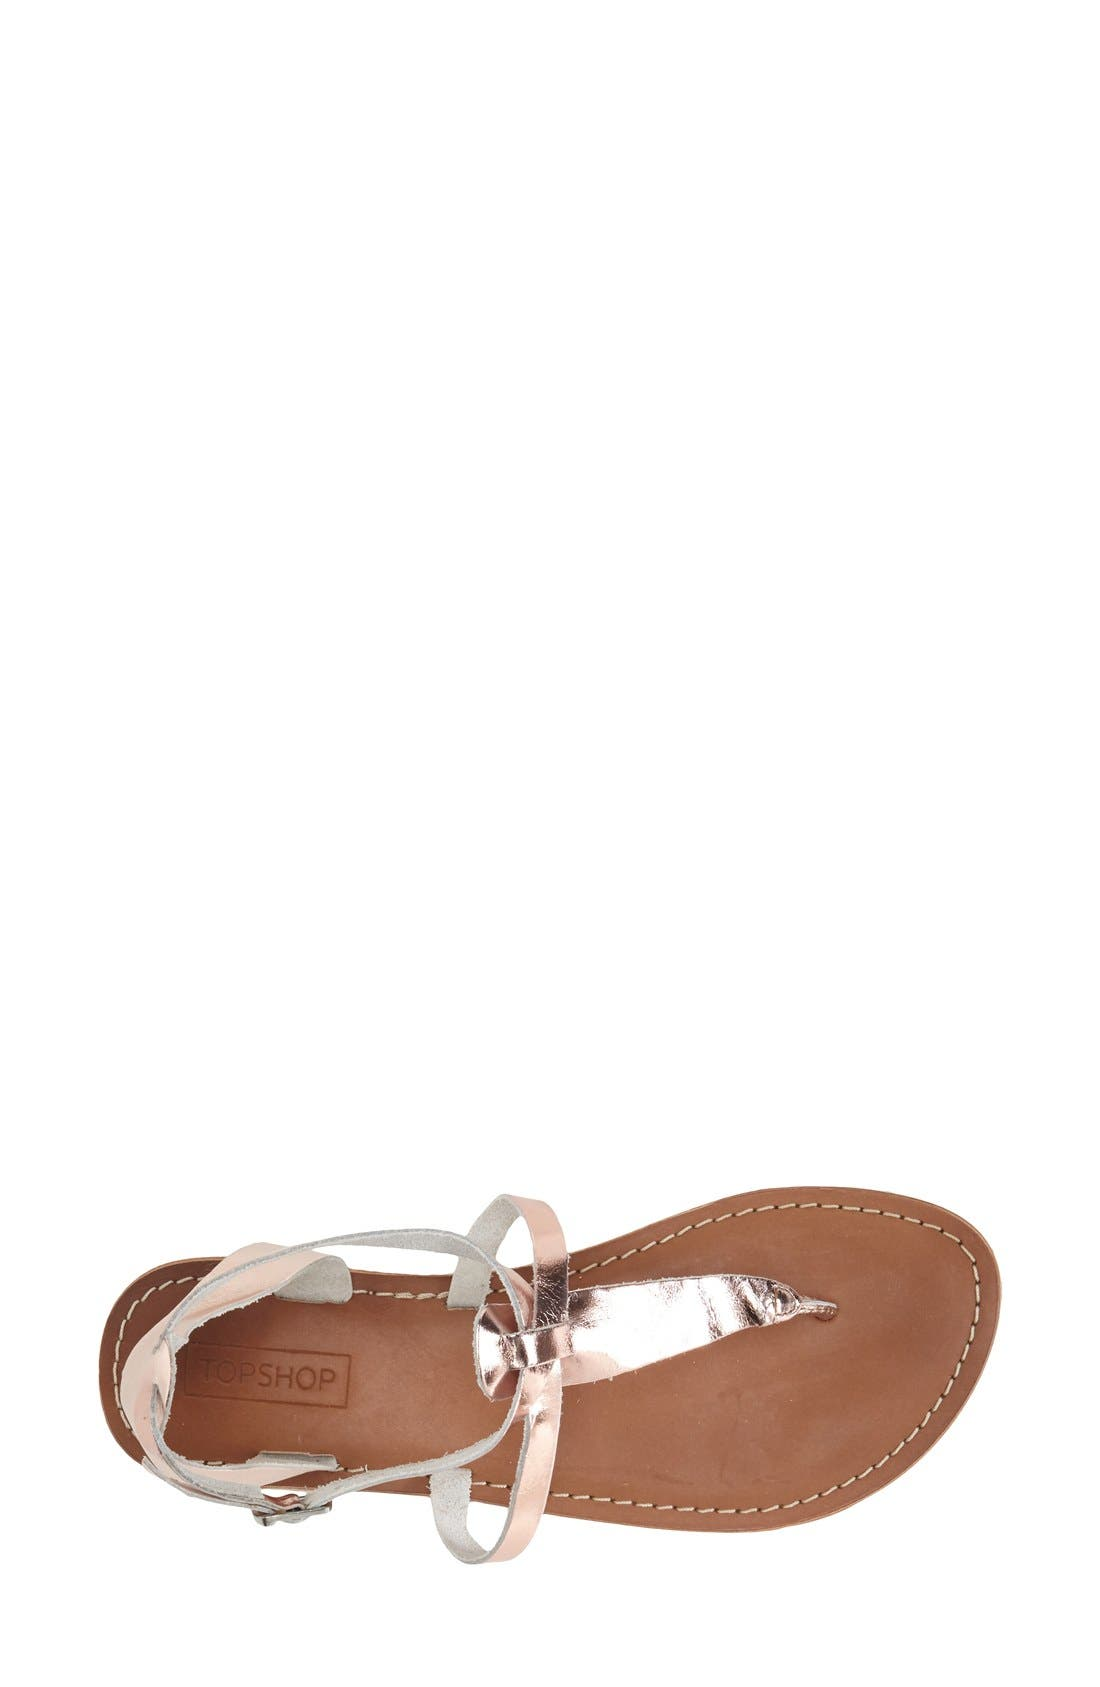 Alternate Image 2  - Topshop 'Horizon' Leather Sandal